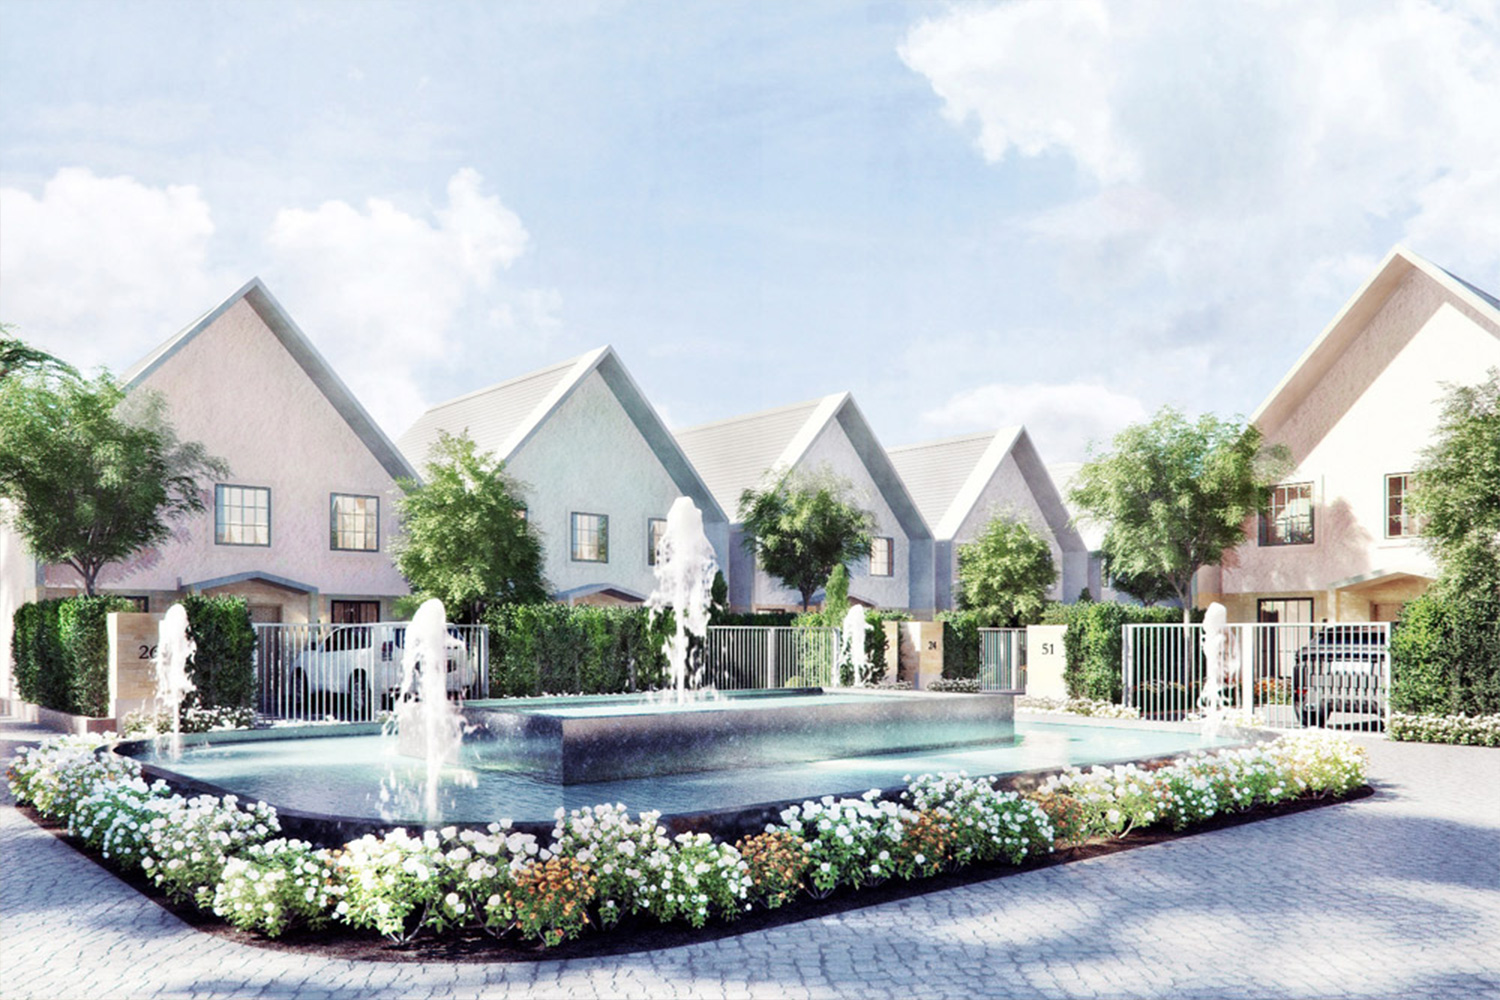 Fairfield Gardens By PDM Holdings in Syokimau, Mombasa Road.